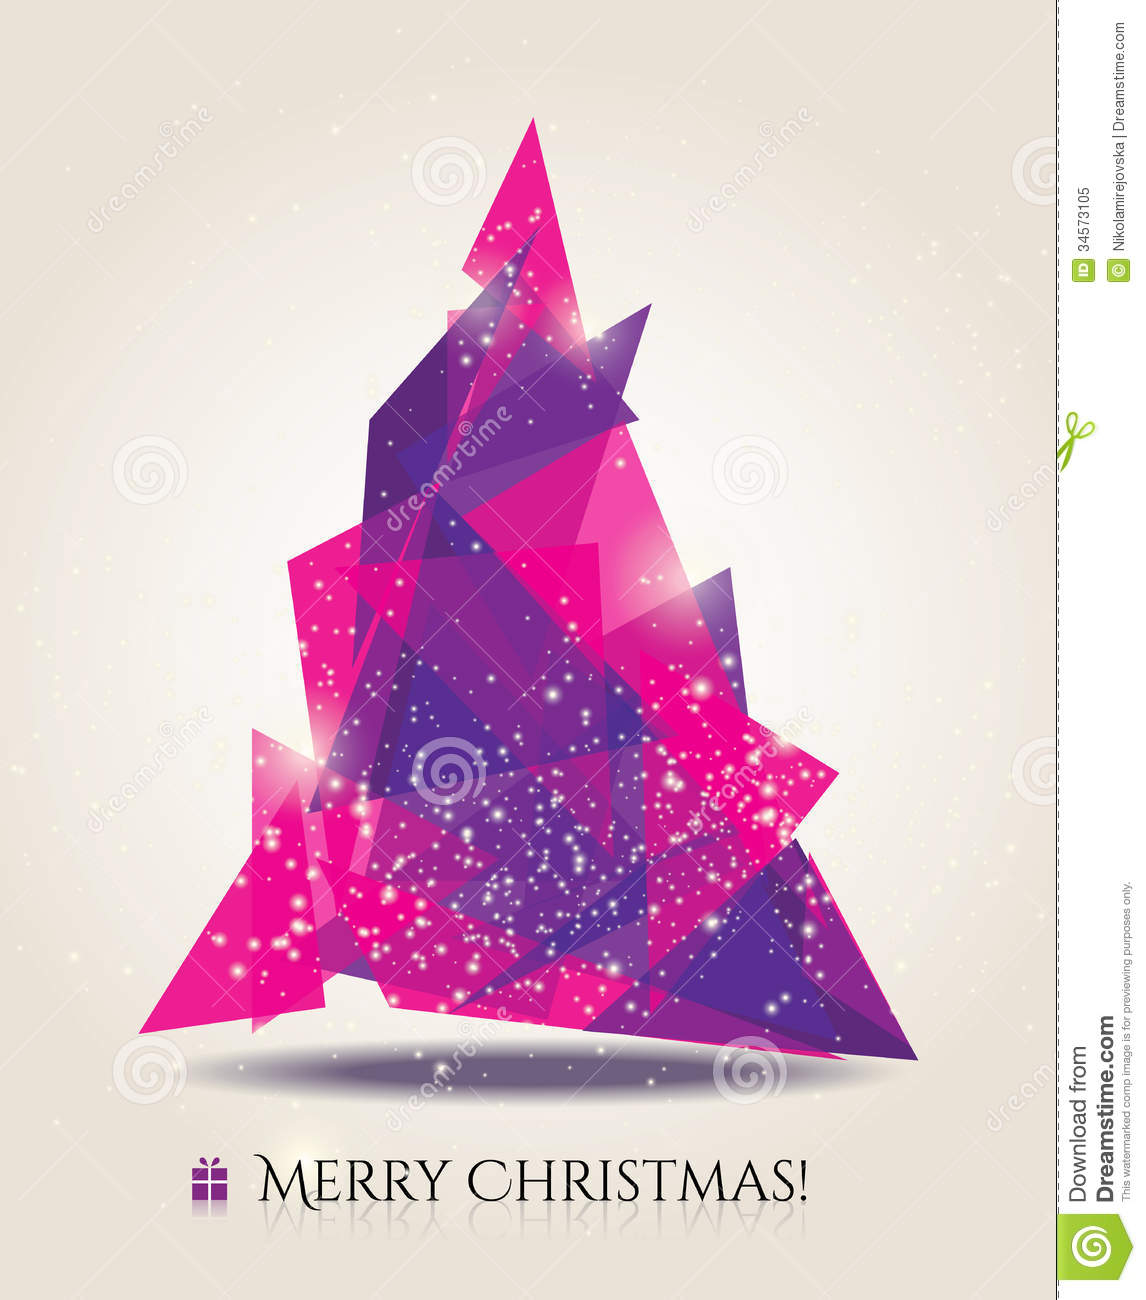 abstract christmas card with modern elements royalty free